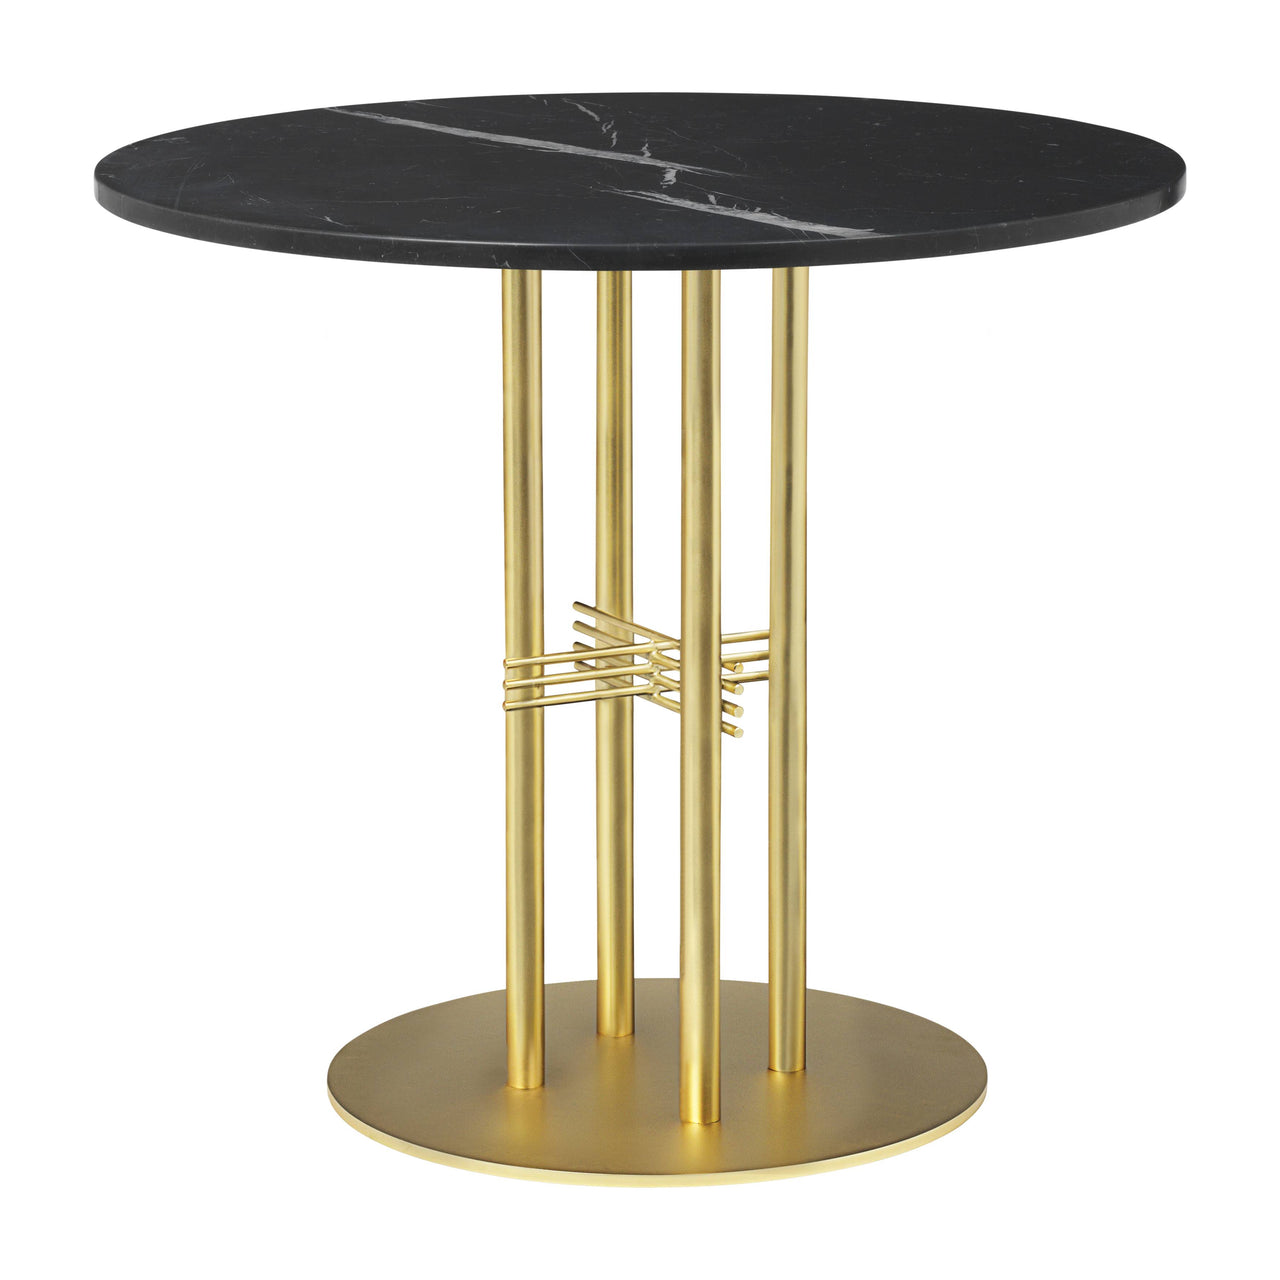 TS Column Dining Table: Small + Brass Base + Black Marquina Marble